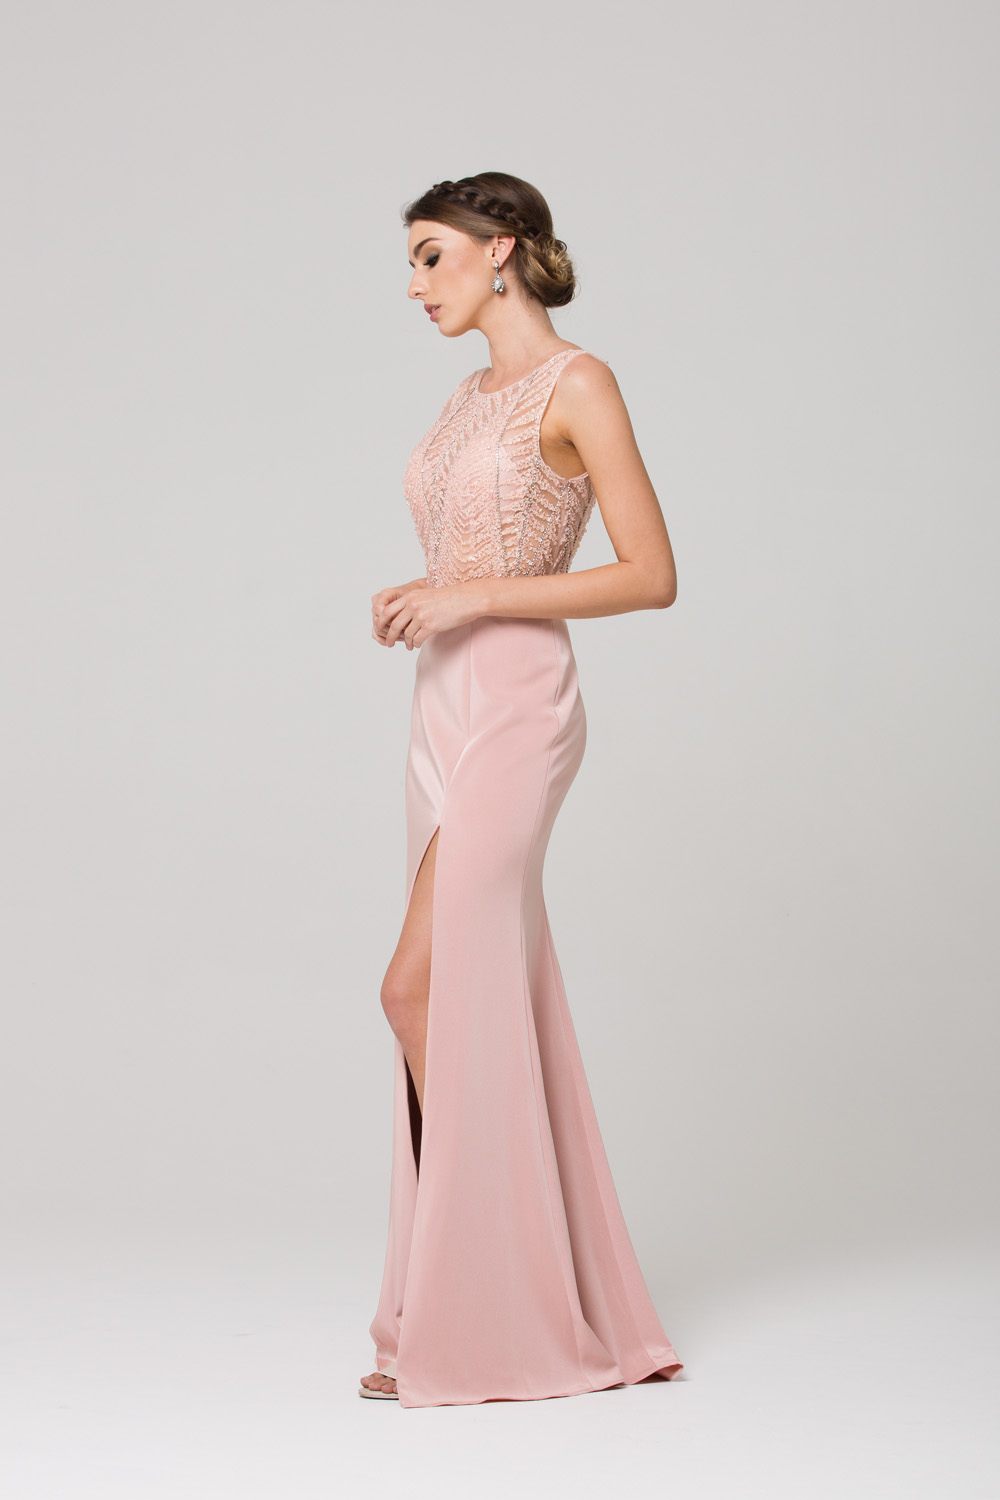 zaylee beaded low back evening dress sentani boutique